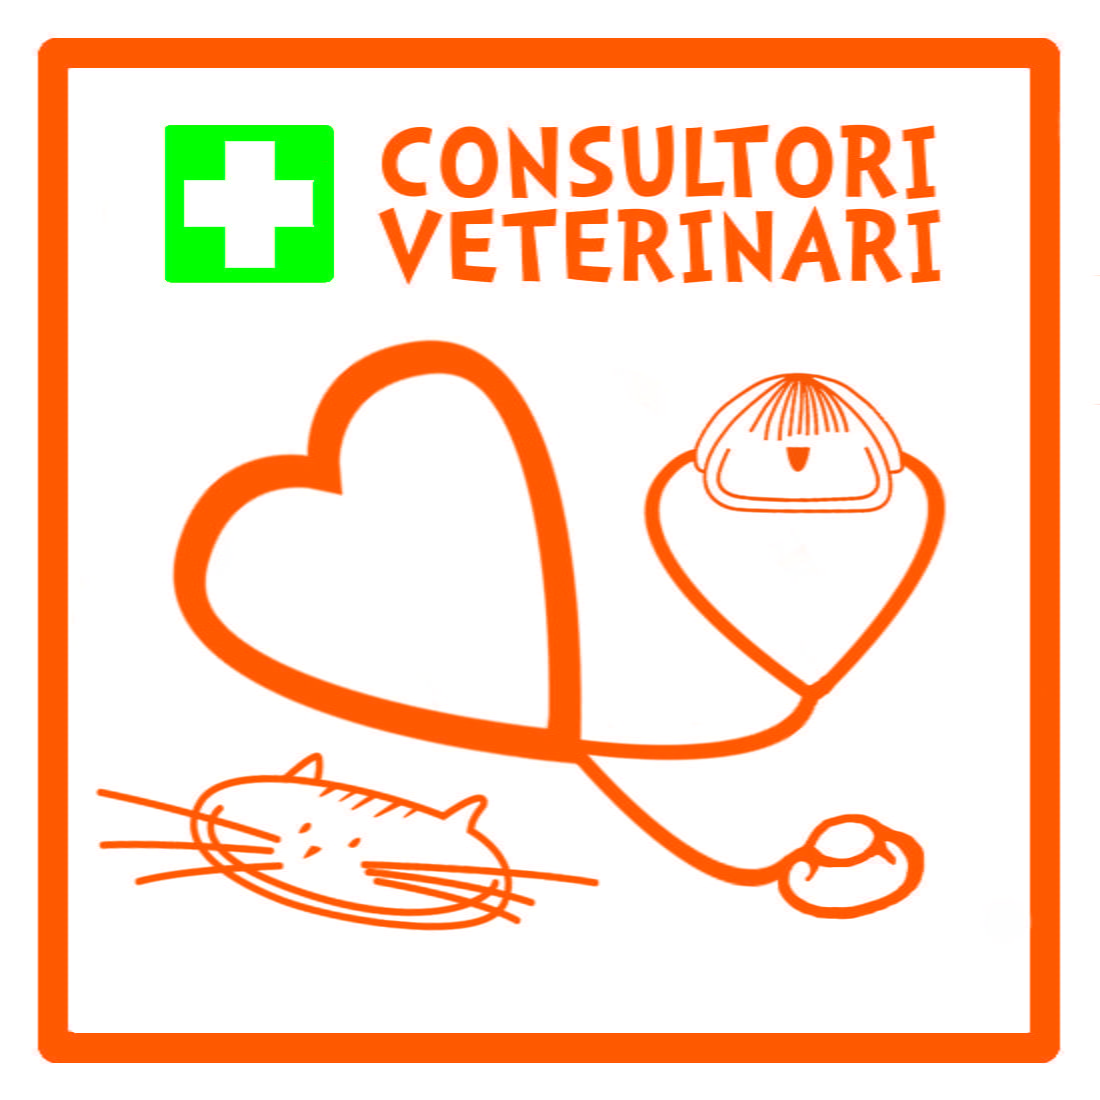 consultori veterinari barcelona horta vilapicina maragall english speaking